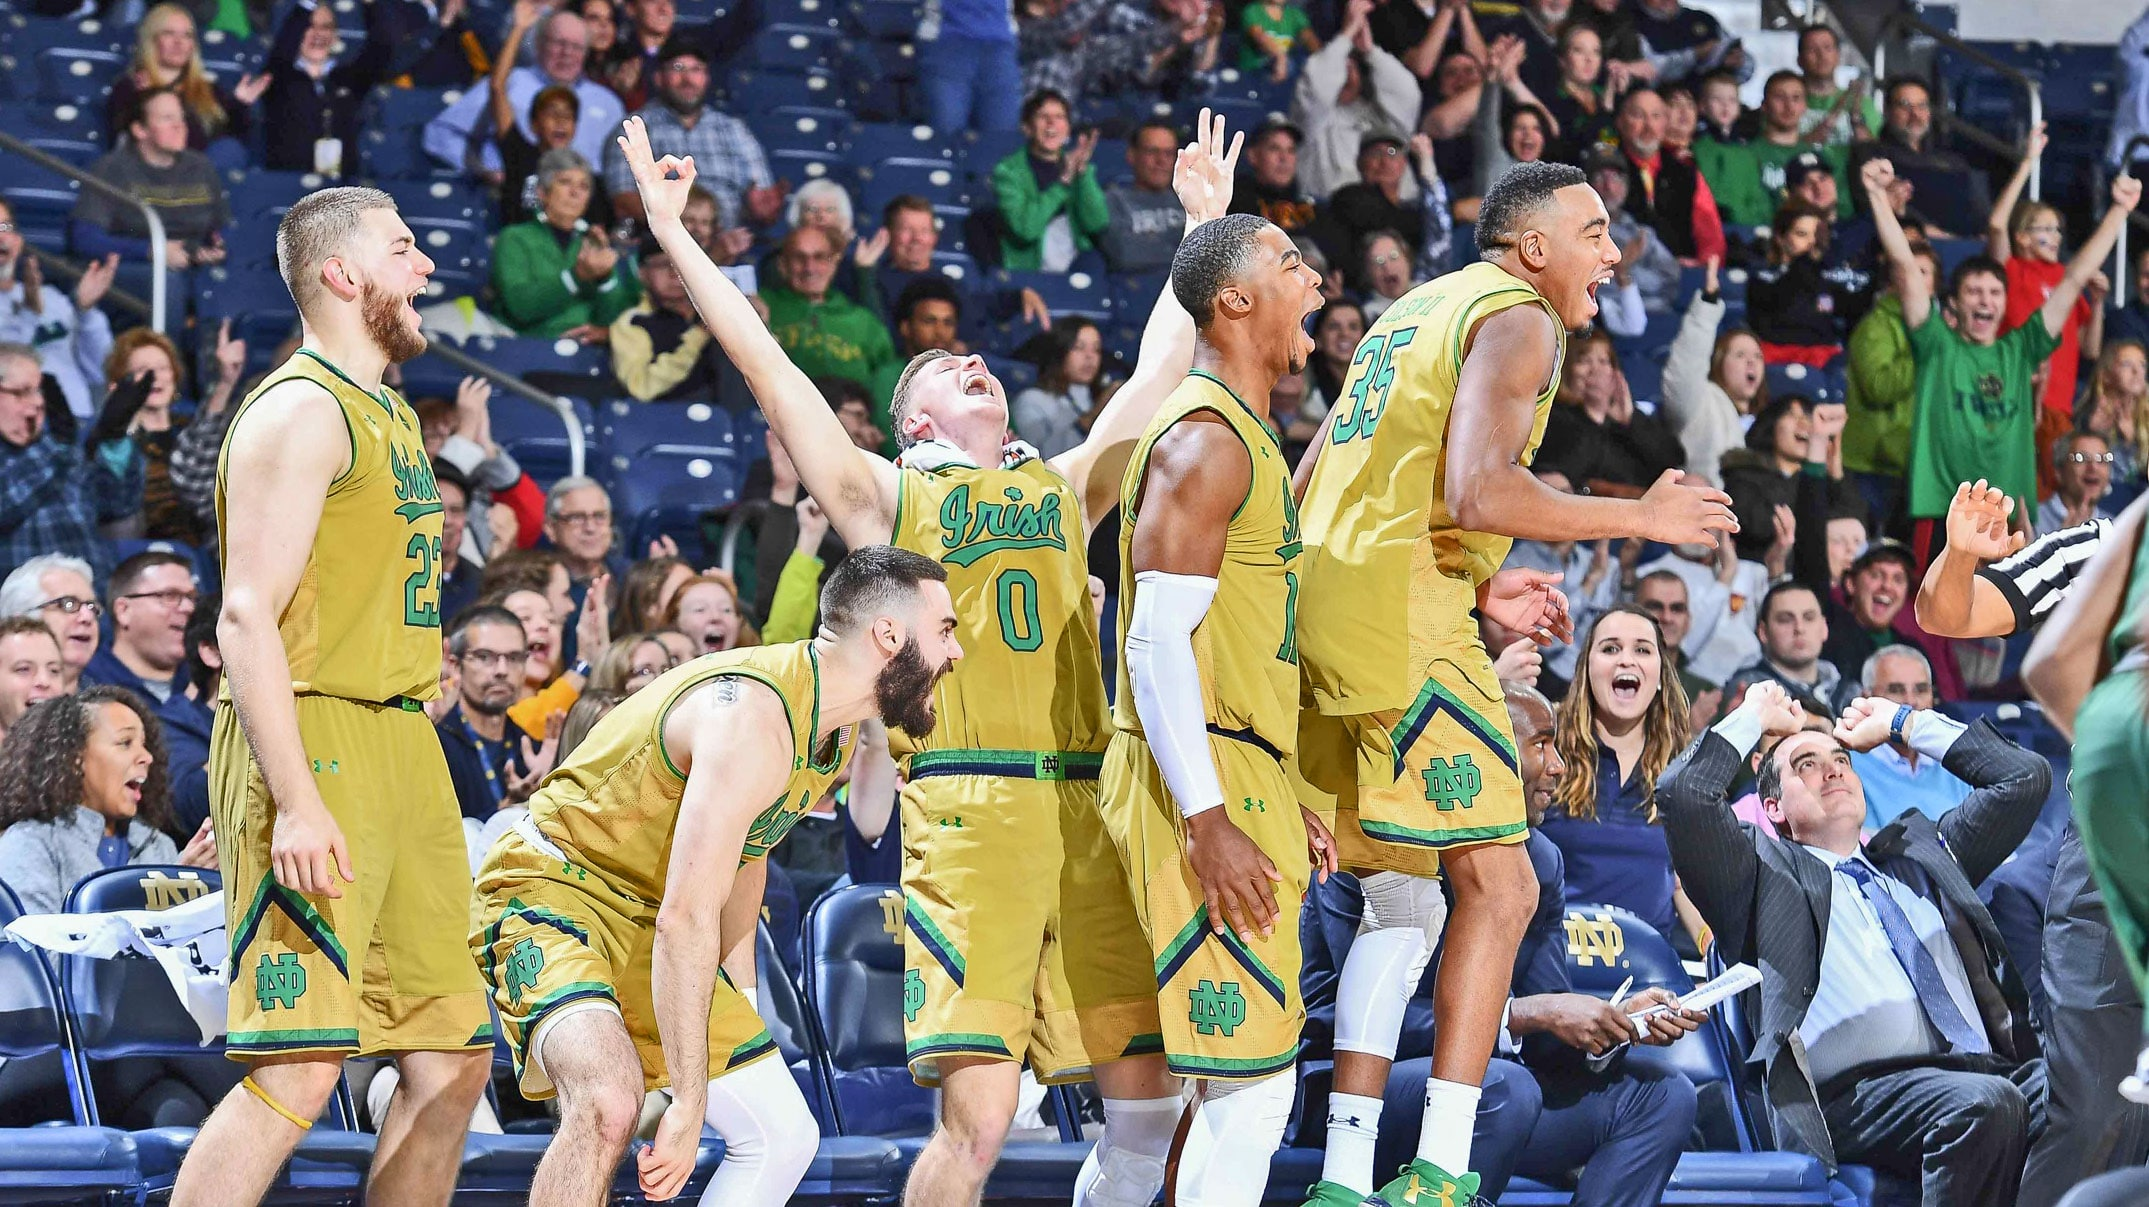 Notre-dame-bball-cleveland